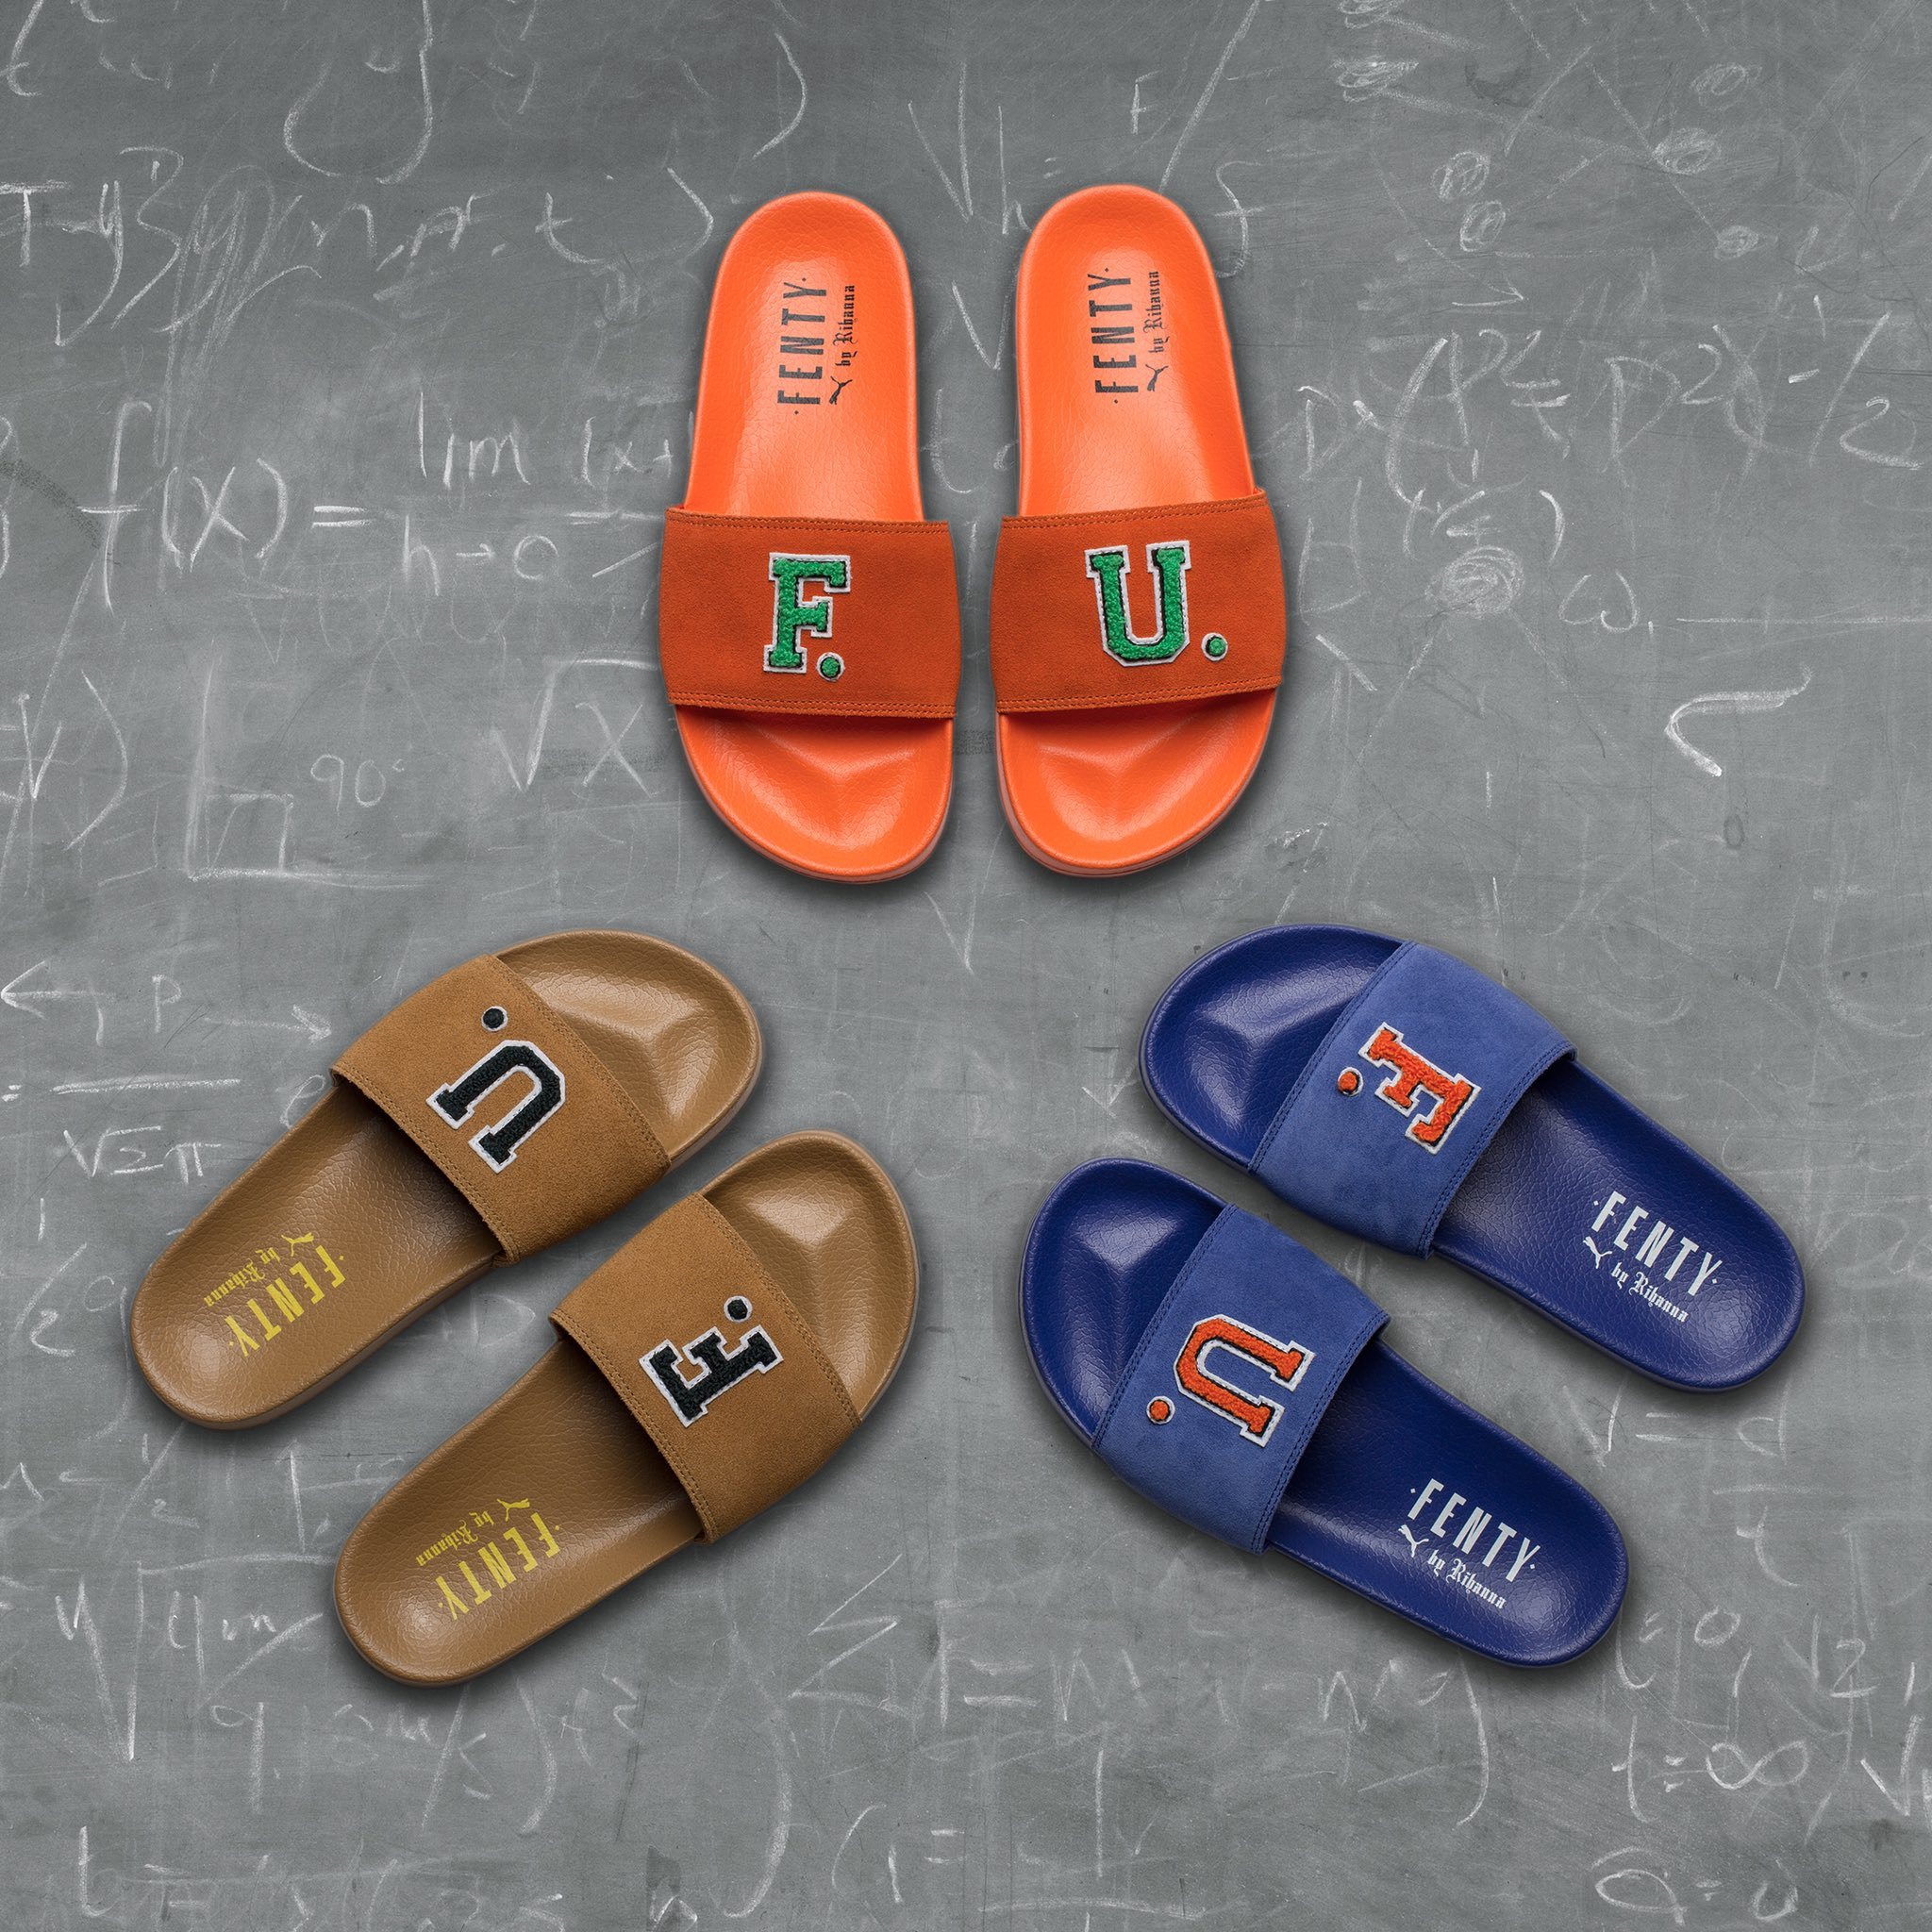 #FENTYxPUMA F.U. suede slides are out now! ... https://t.co/ptA1gkquJY https://t.co/HpGmbOR8Oy